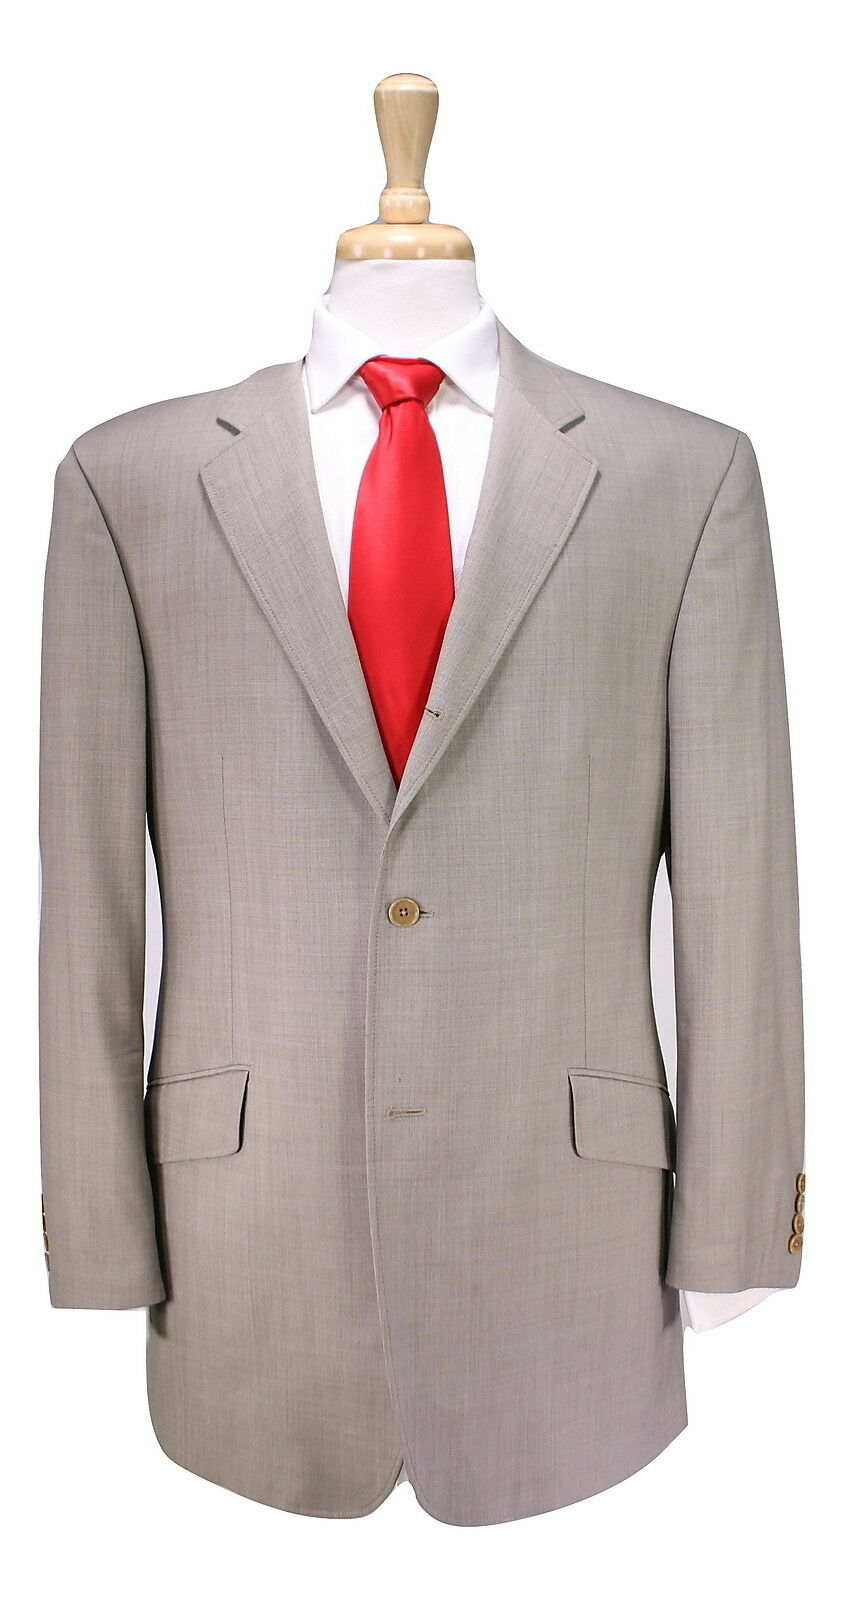 JOHN VARVATOS  Recent Solid Beige 2-Btn ITALY Wool Luxury Suit 40R